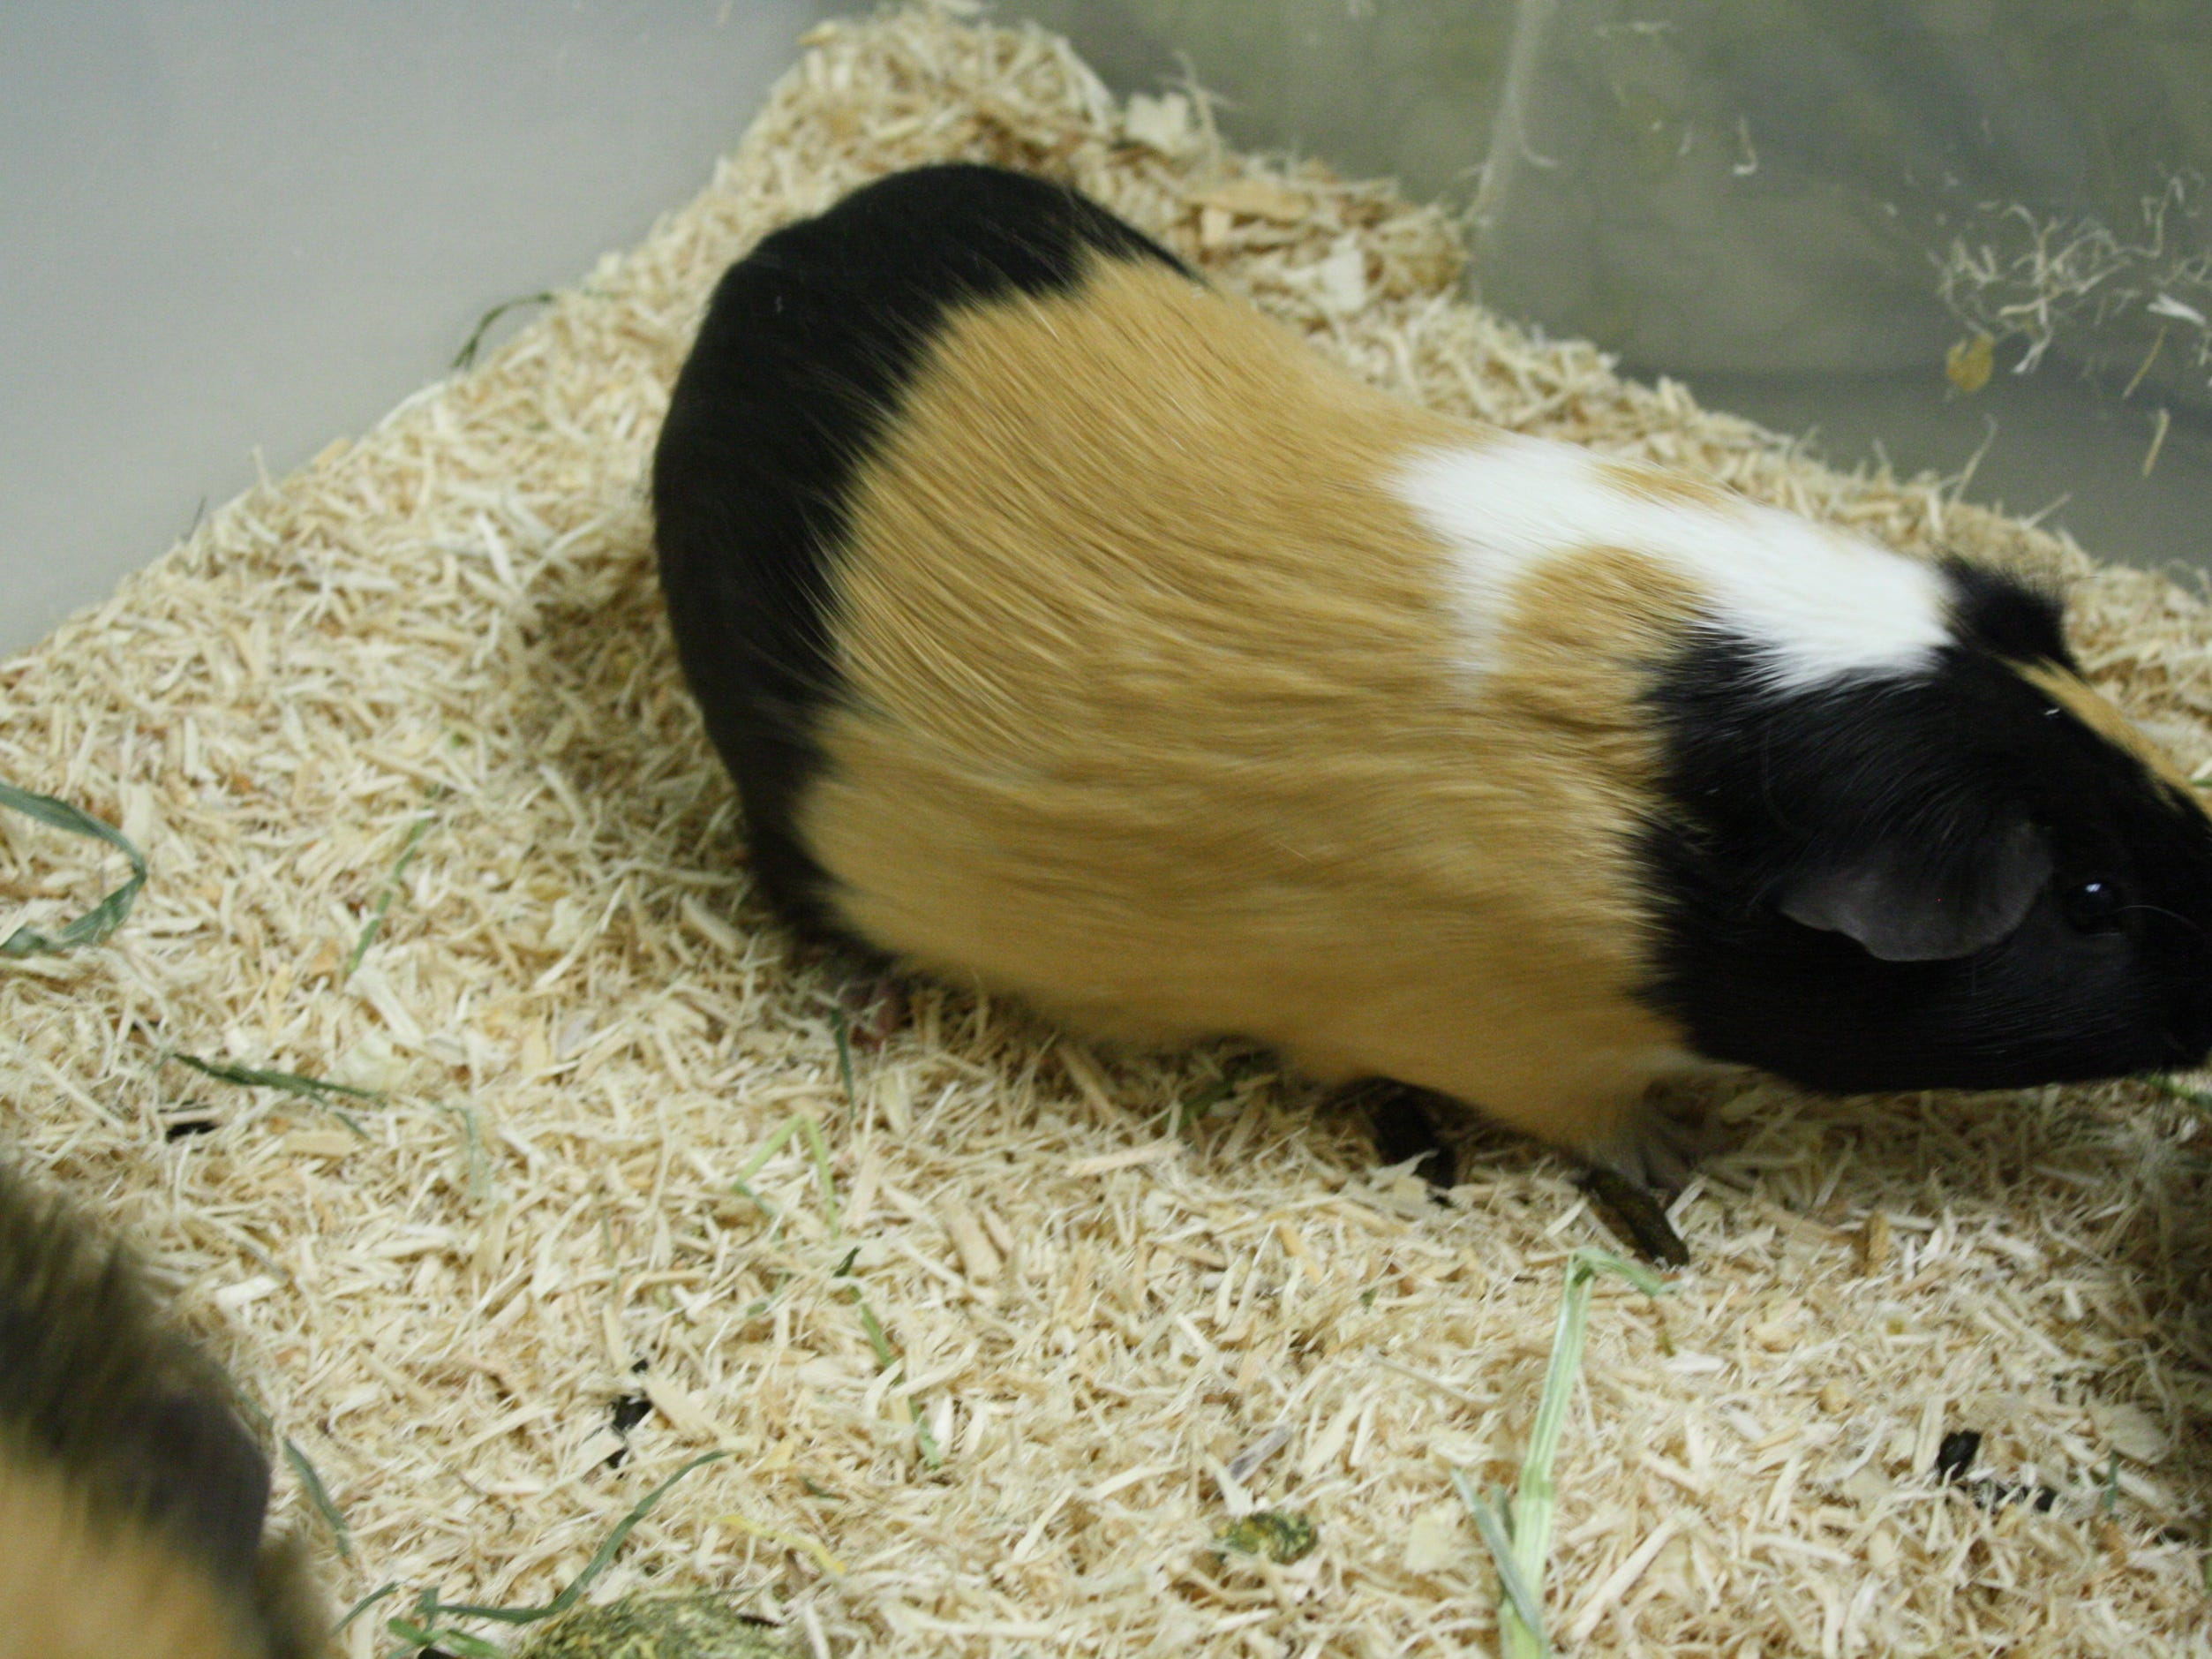 Chris Jericho, a 9-month-old Guinea pig, loves to be held and wants a home with his brother, Joey Janella.